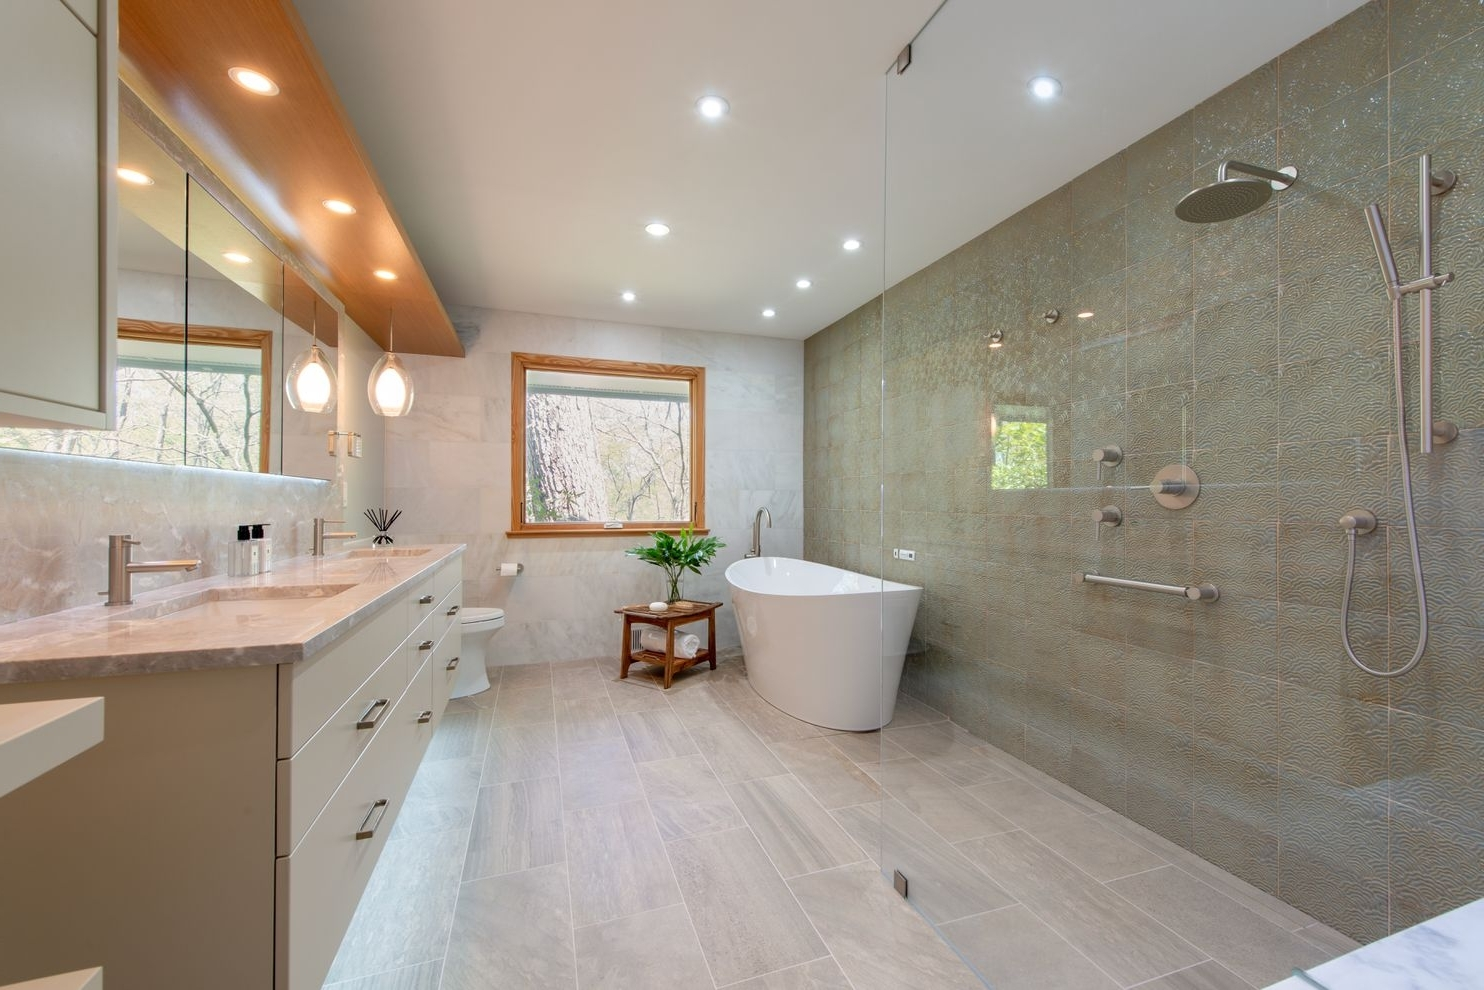 A Closer Look At Bathroom Design Trends For 2020 The 10+ Narrow Ensuite Bathroom Ideas